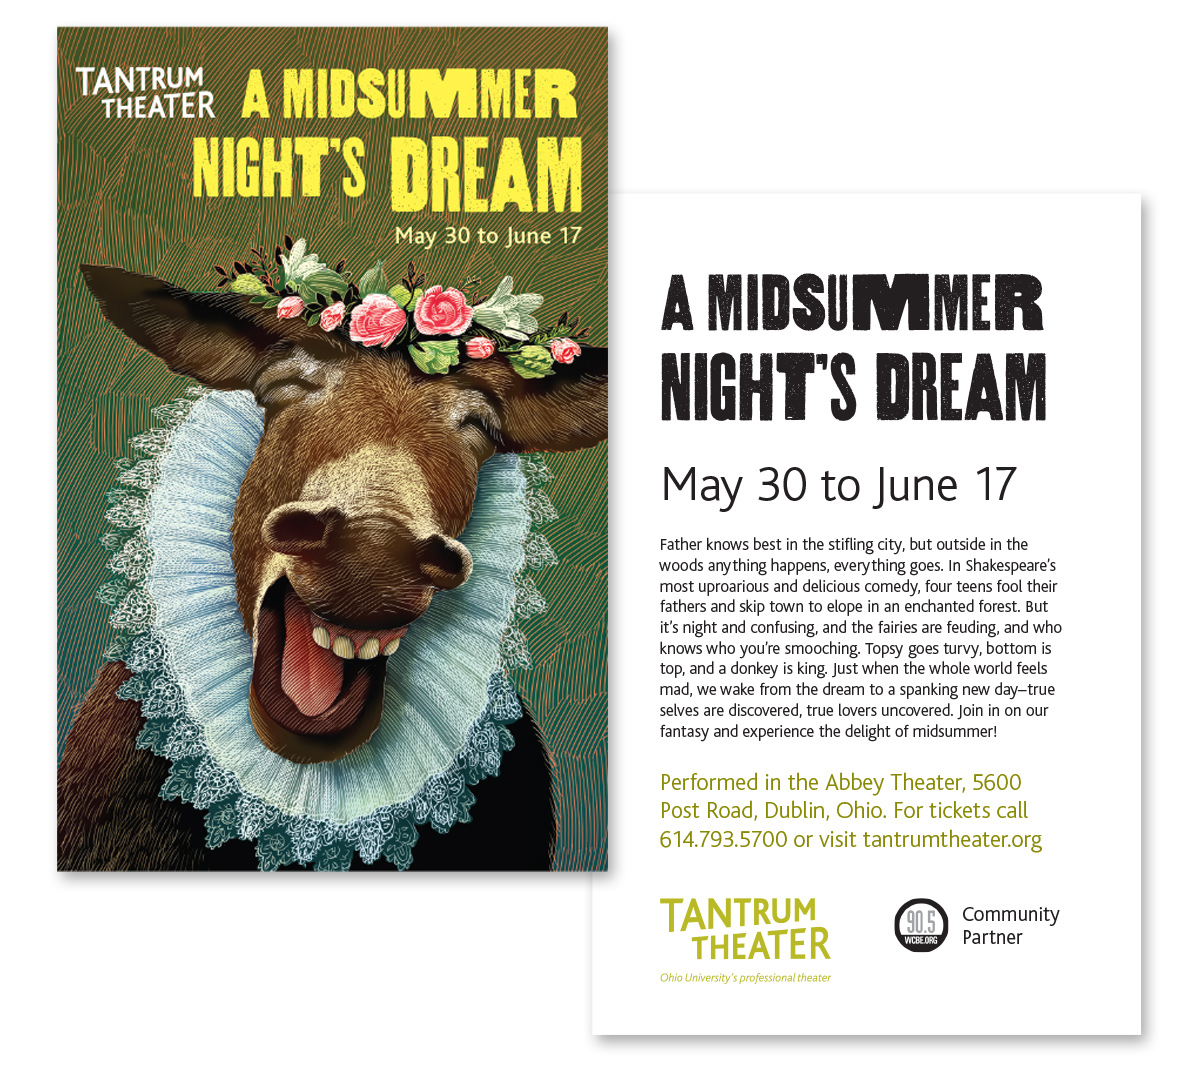 THEATRE-Tantrum-midsummer